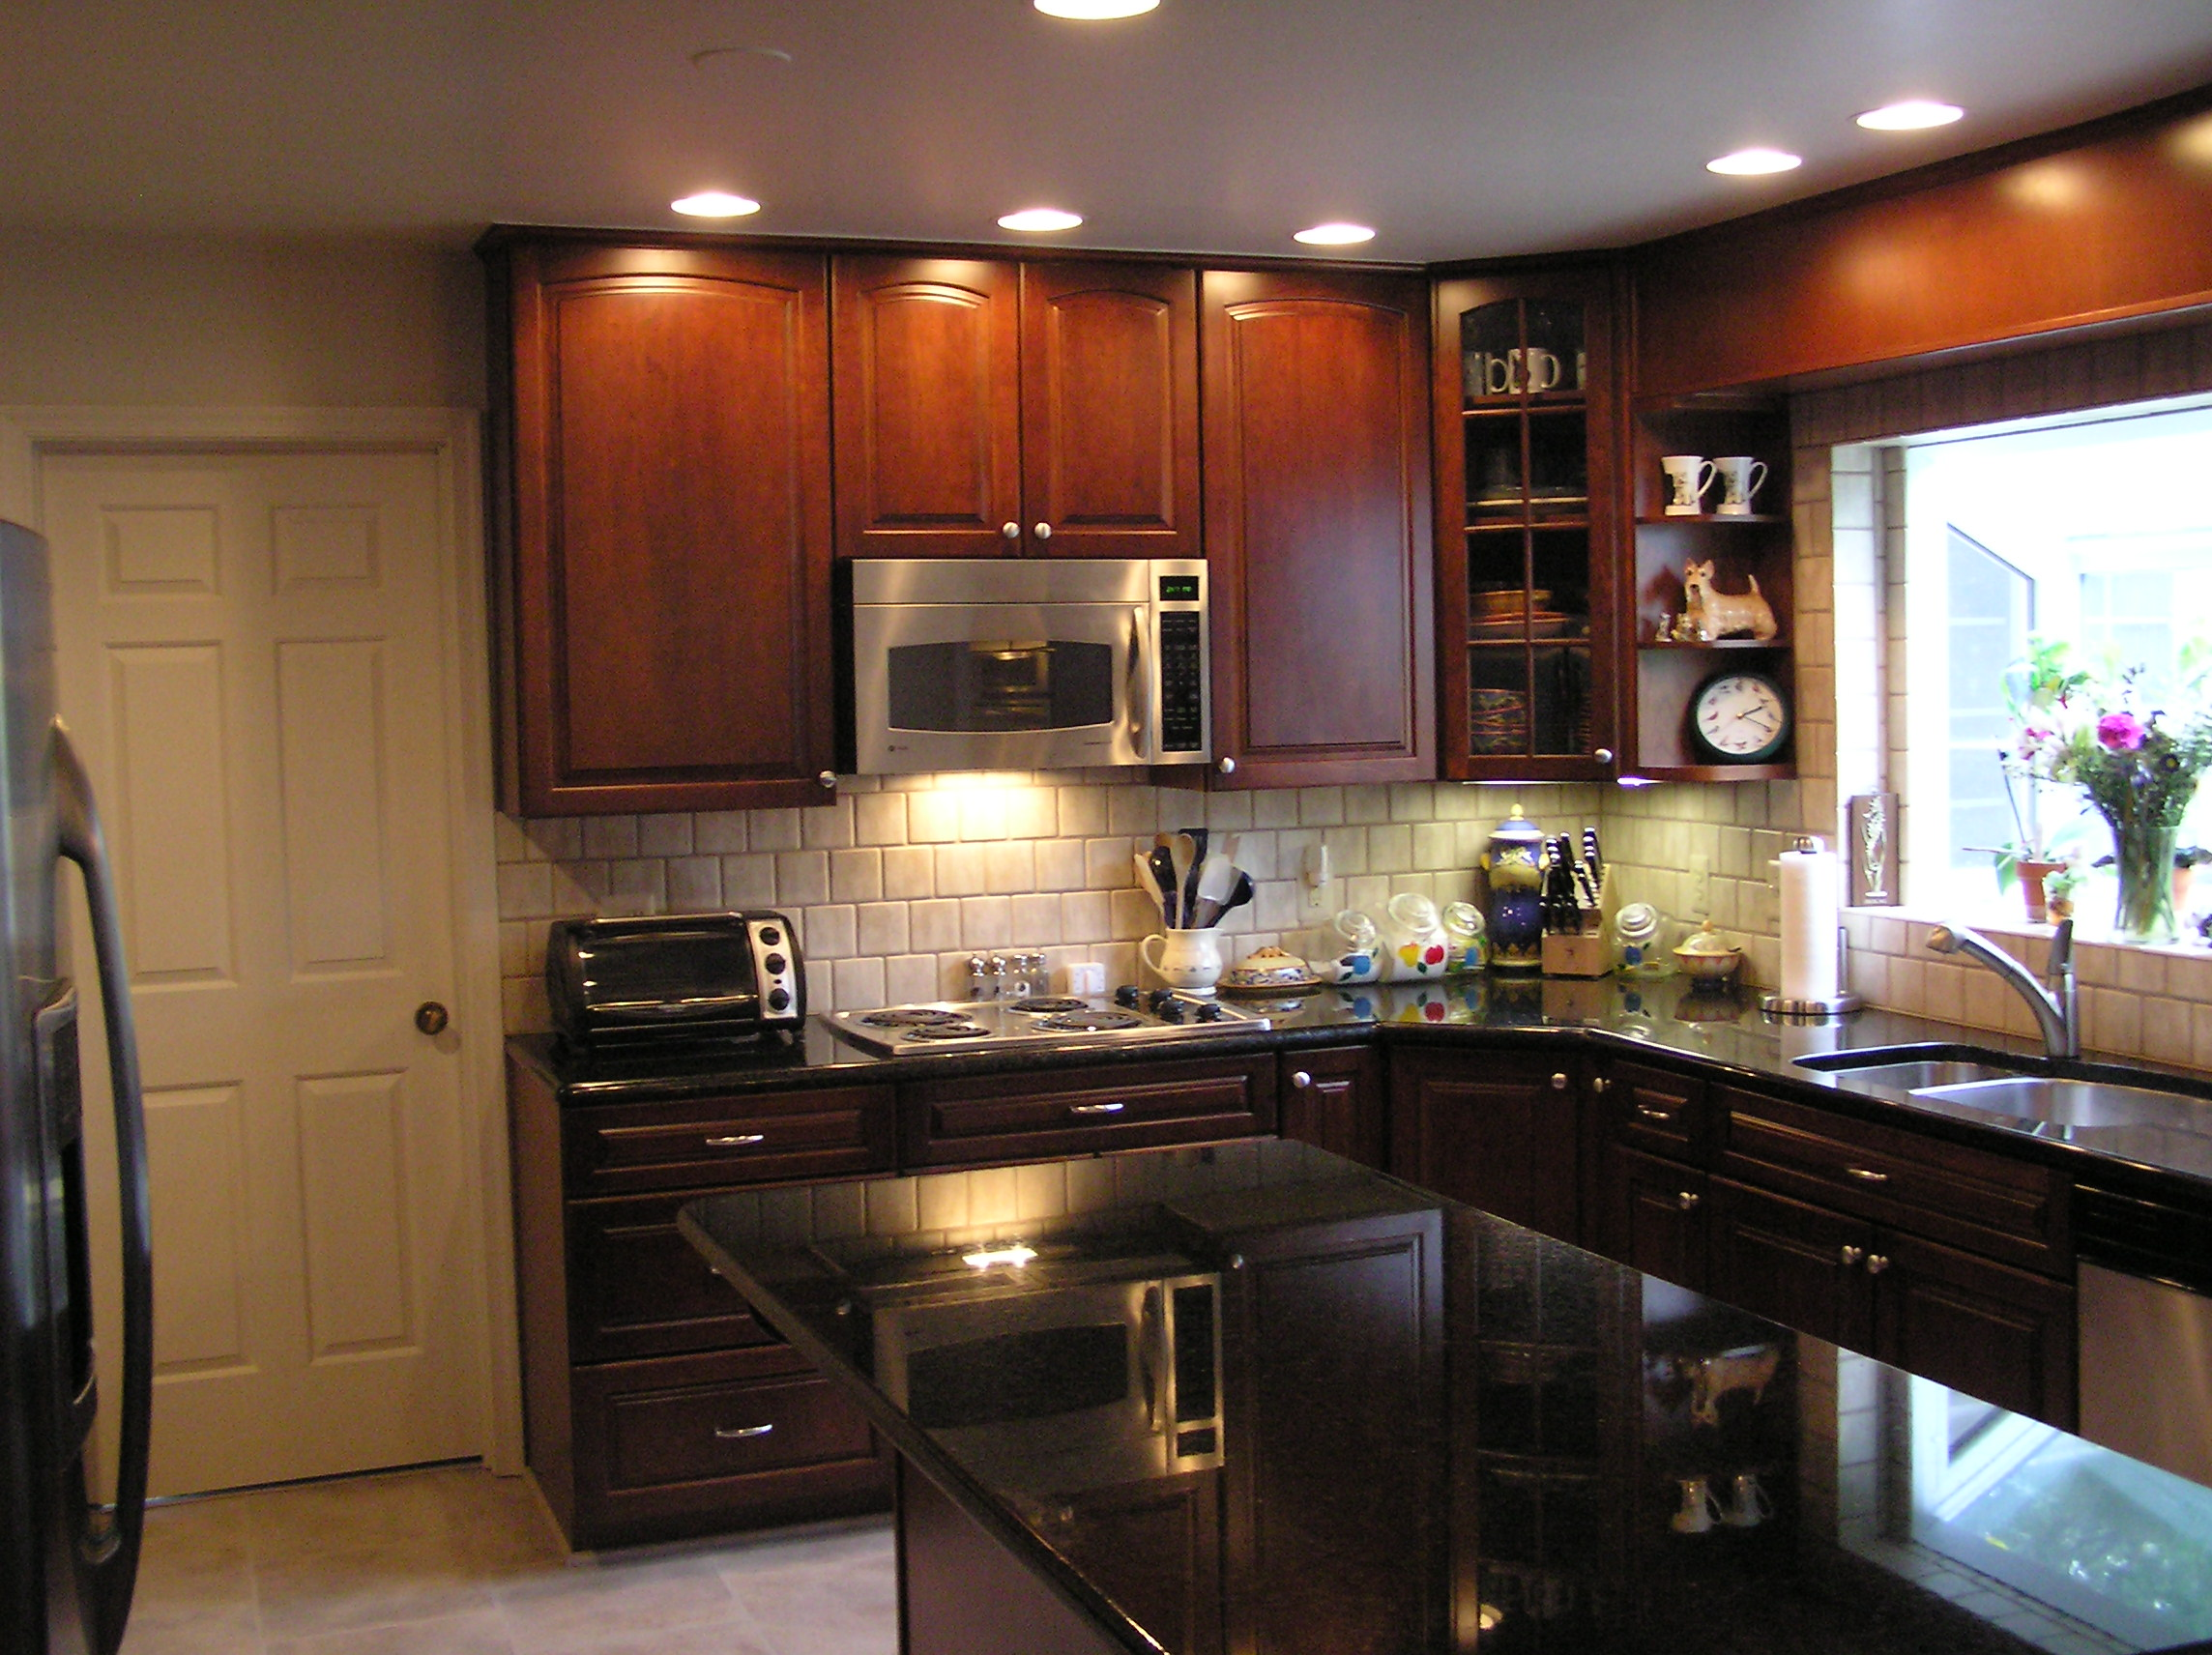 remodeling a small kitchen photo - 2